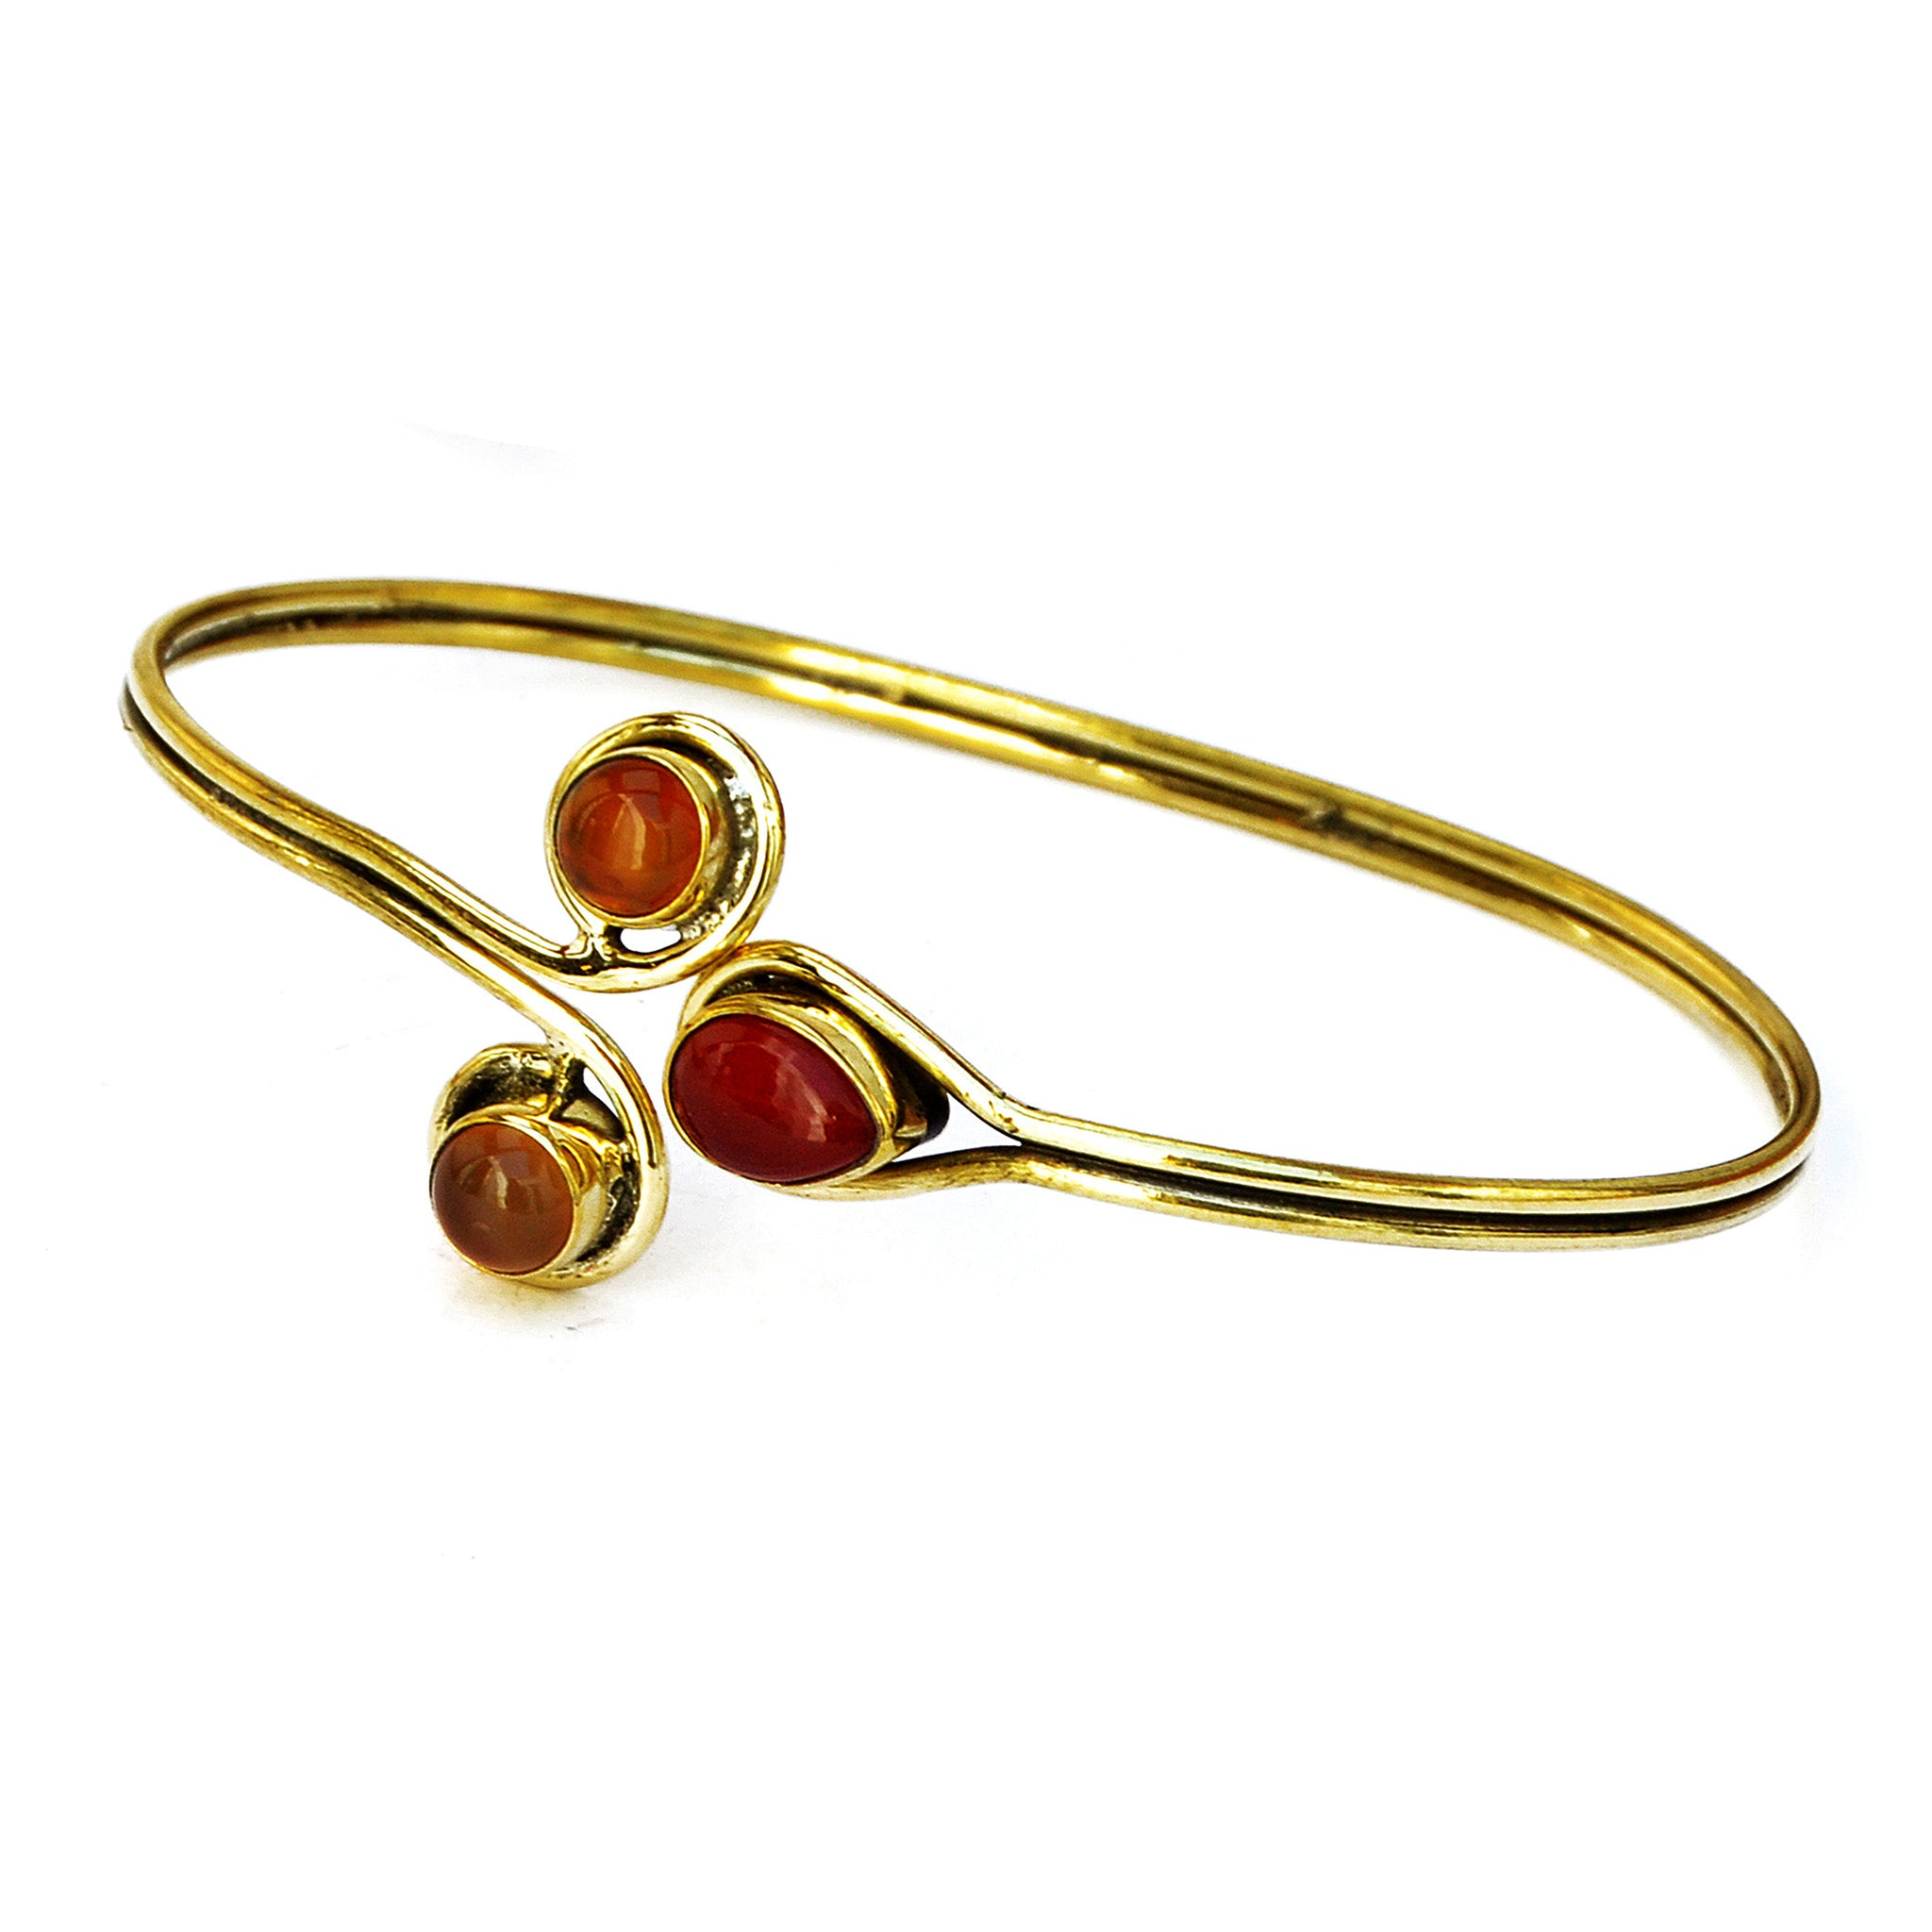 Indian gold bracelet with red and orange stones